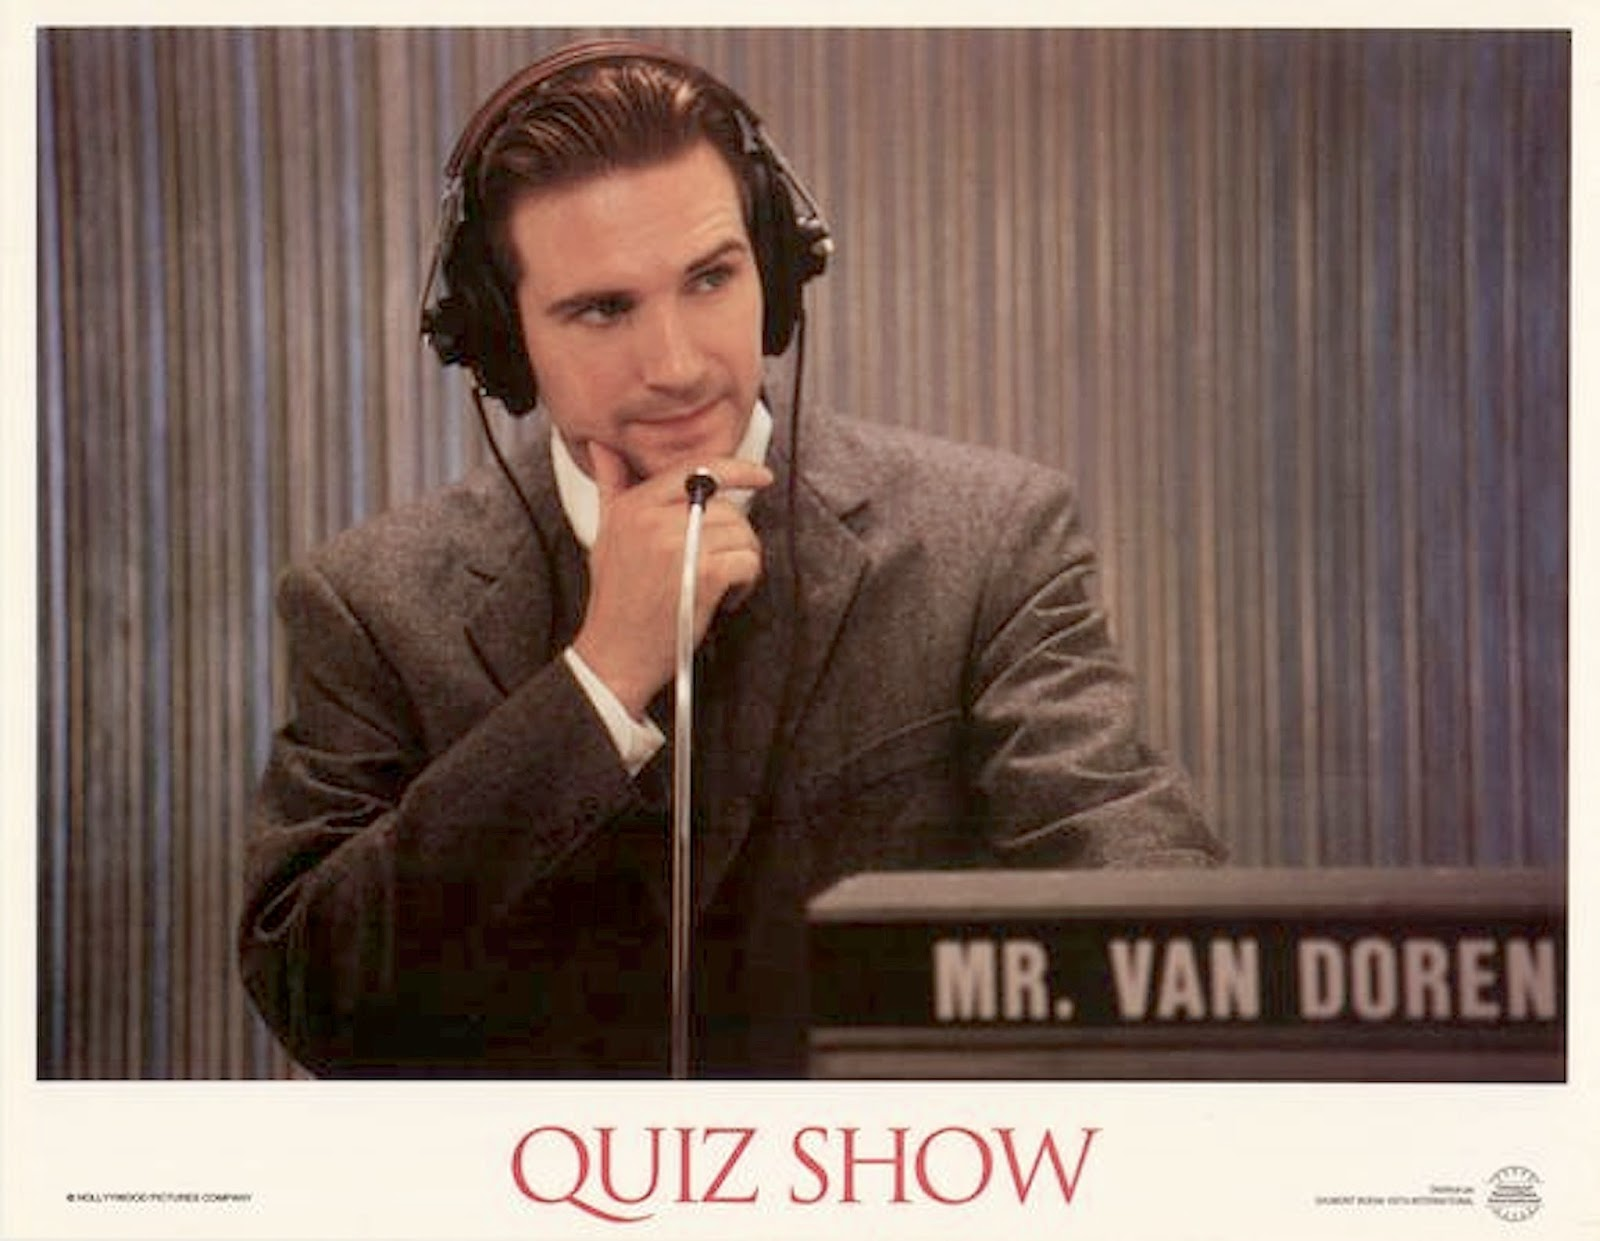 FILM: QUIZ SHOW at 20